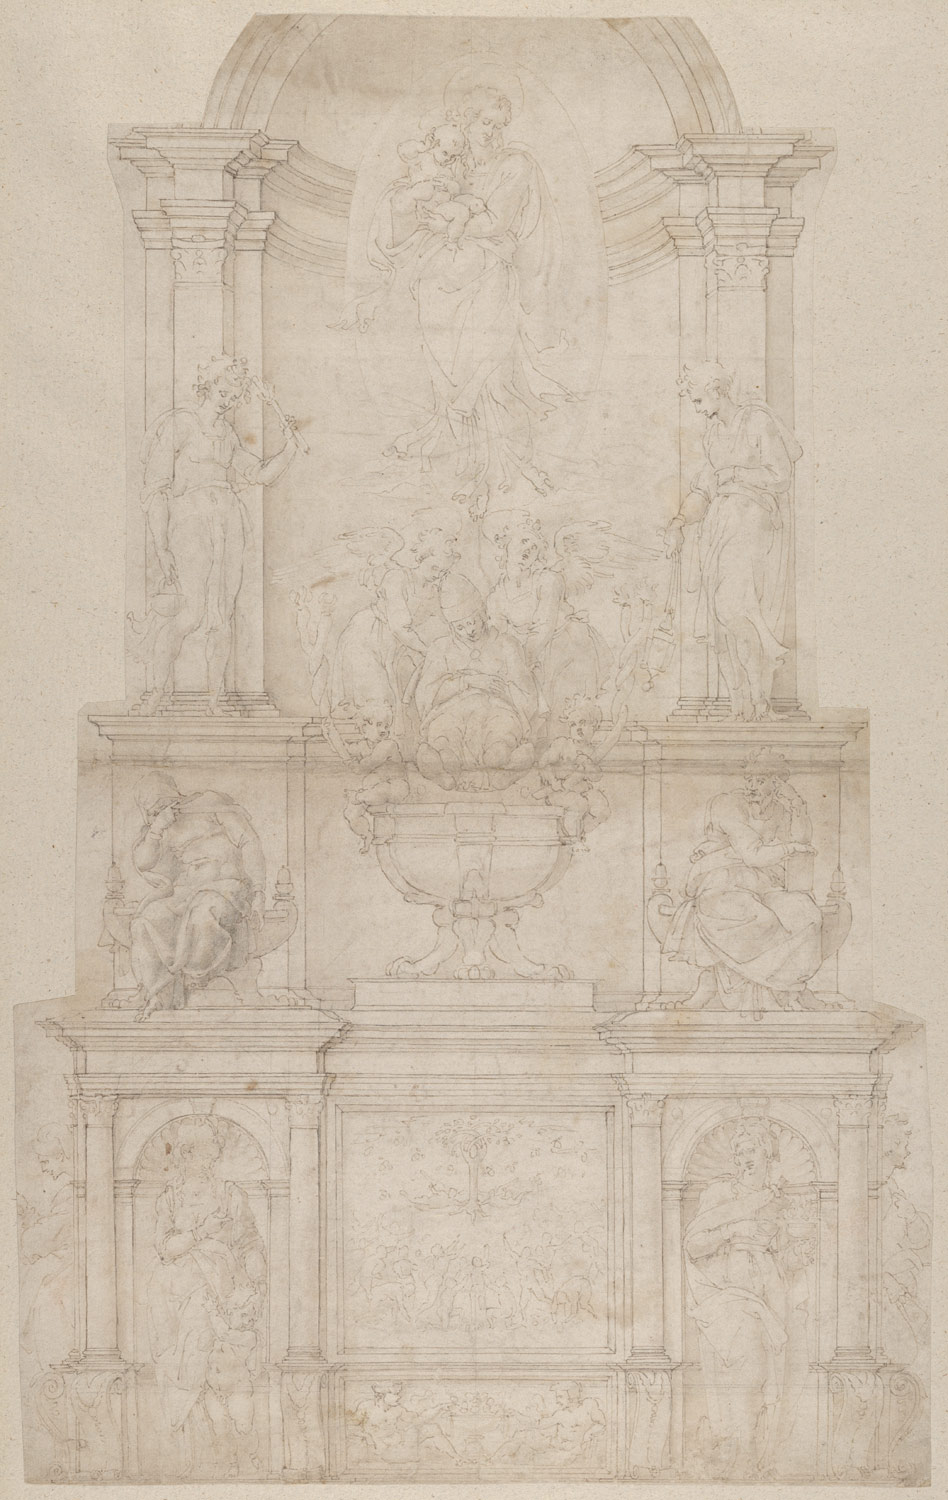 design for the tomb of pope julius ii della rovere michelangelo  design for the tomb of pope julius ii della rovere